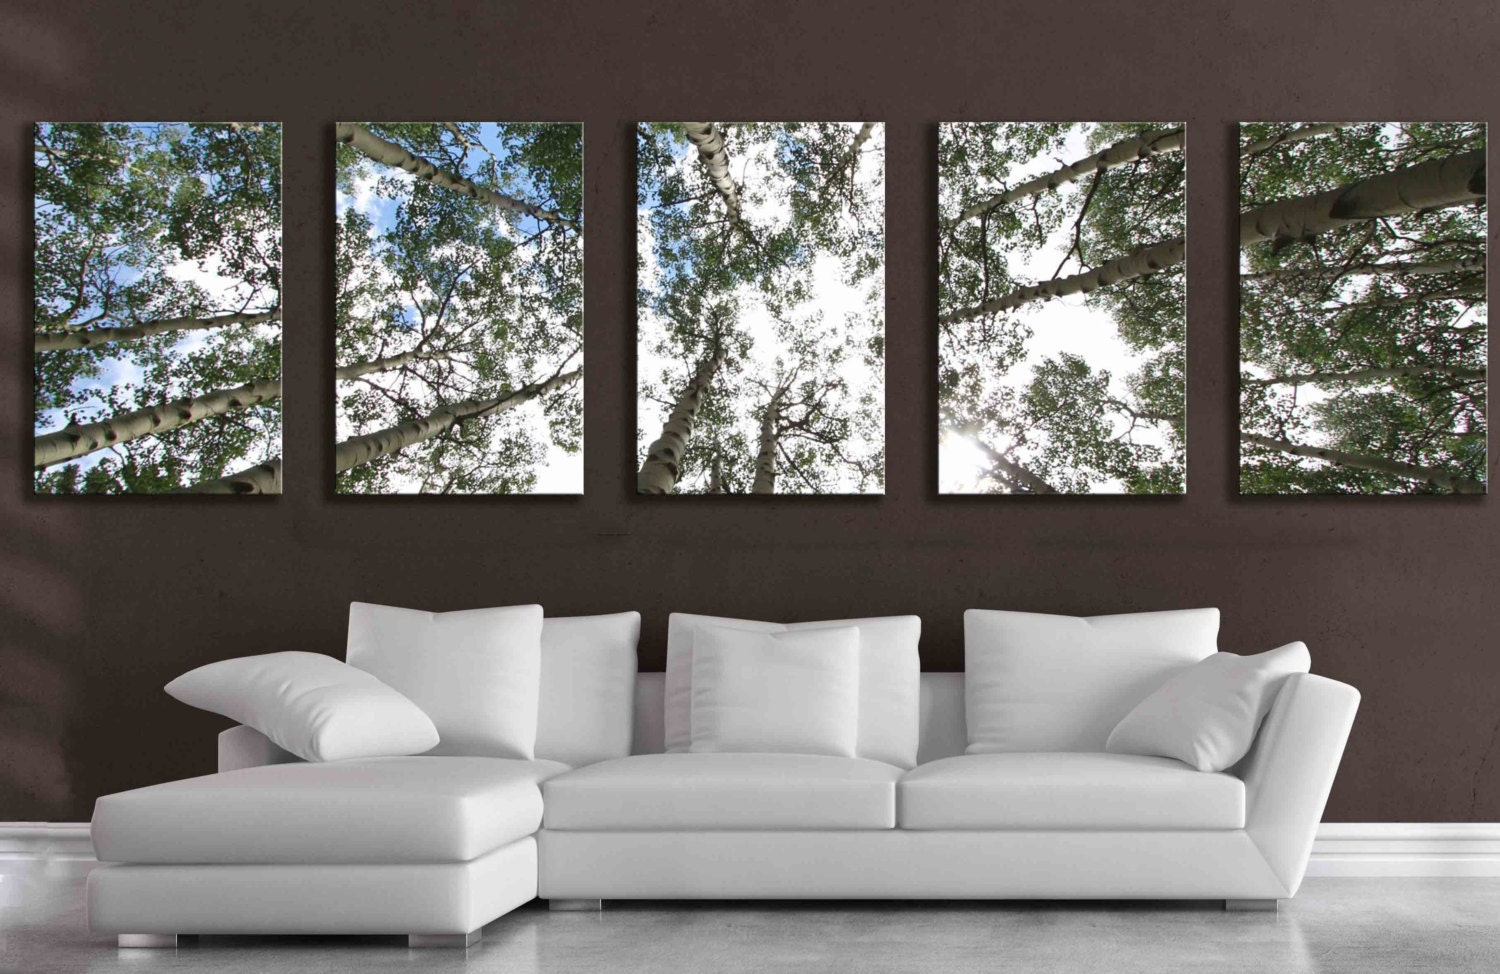 Large H Wall Decor : Large panel wall art aspen tree canvas decor five multipiece